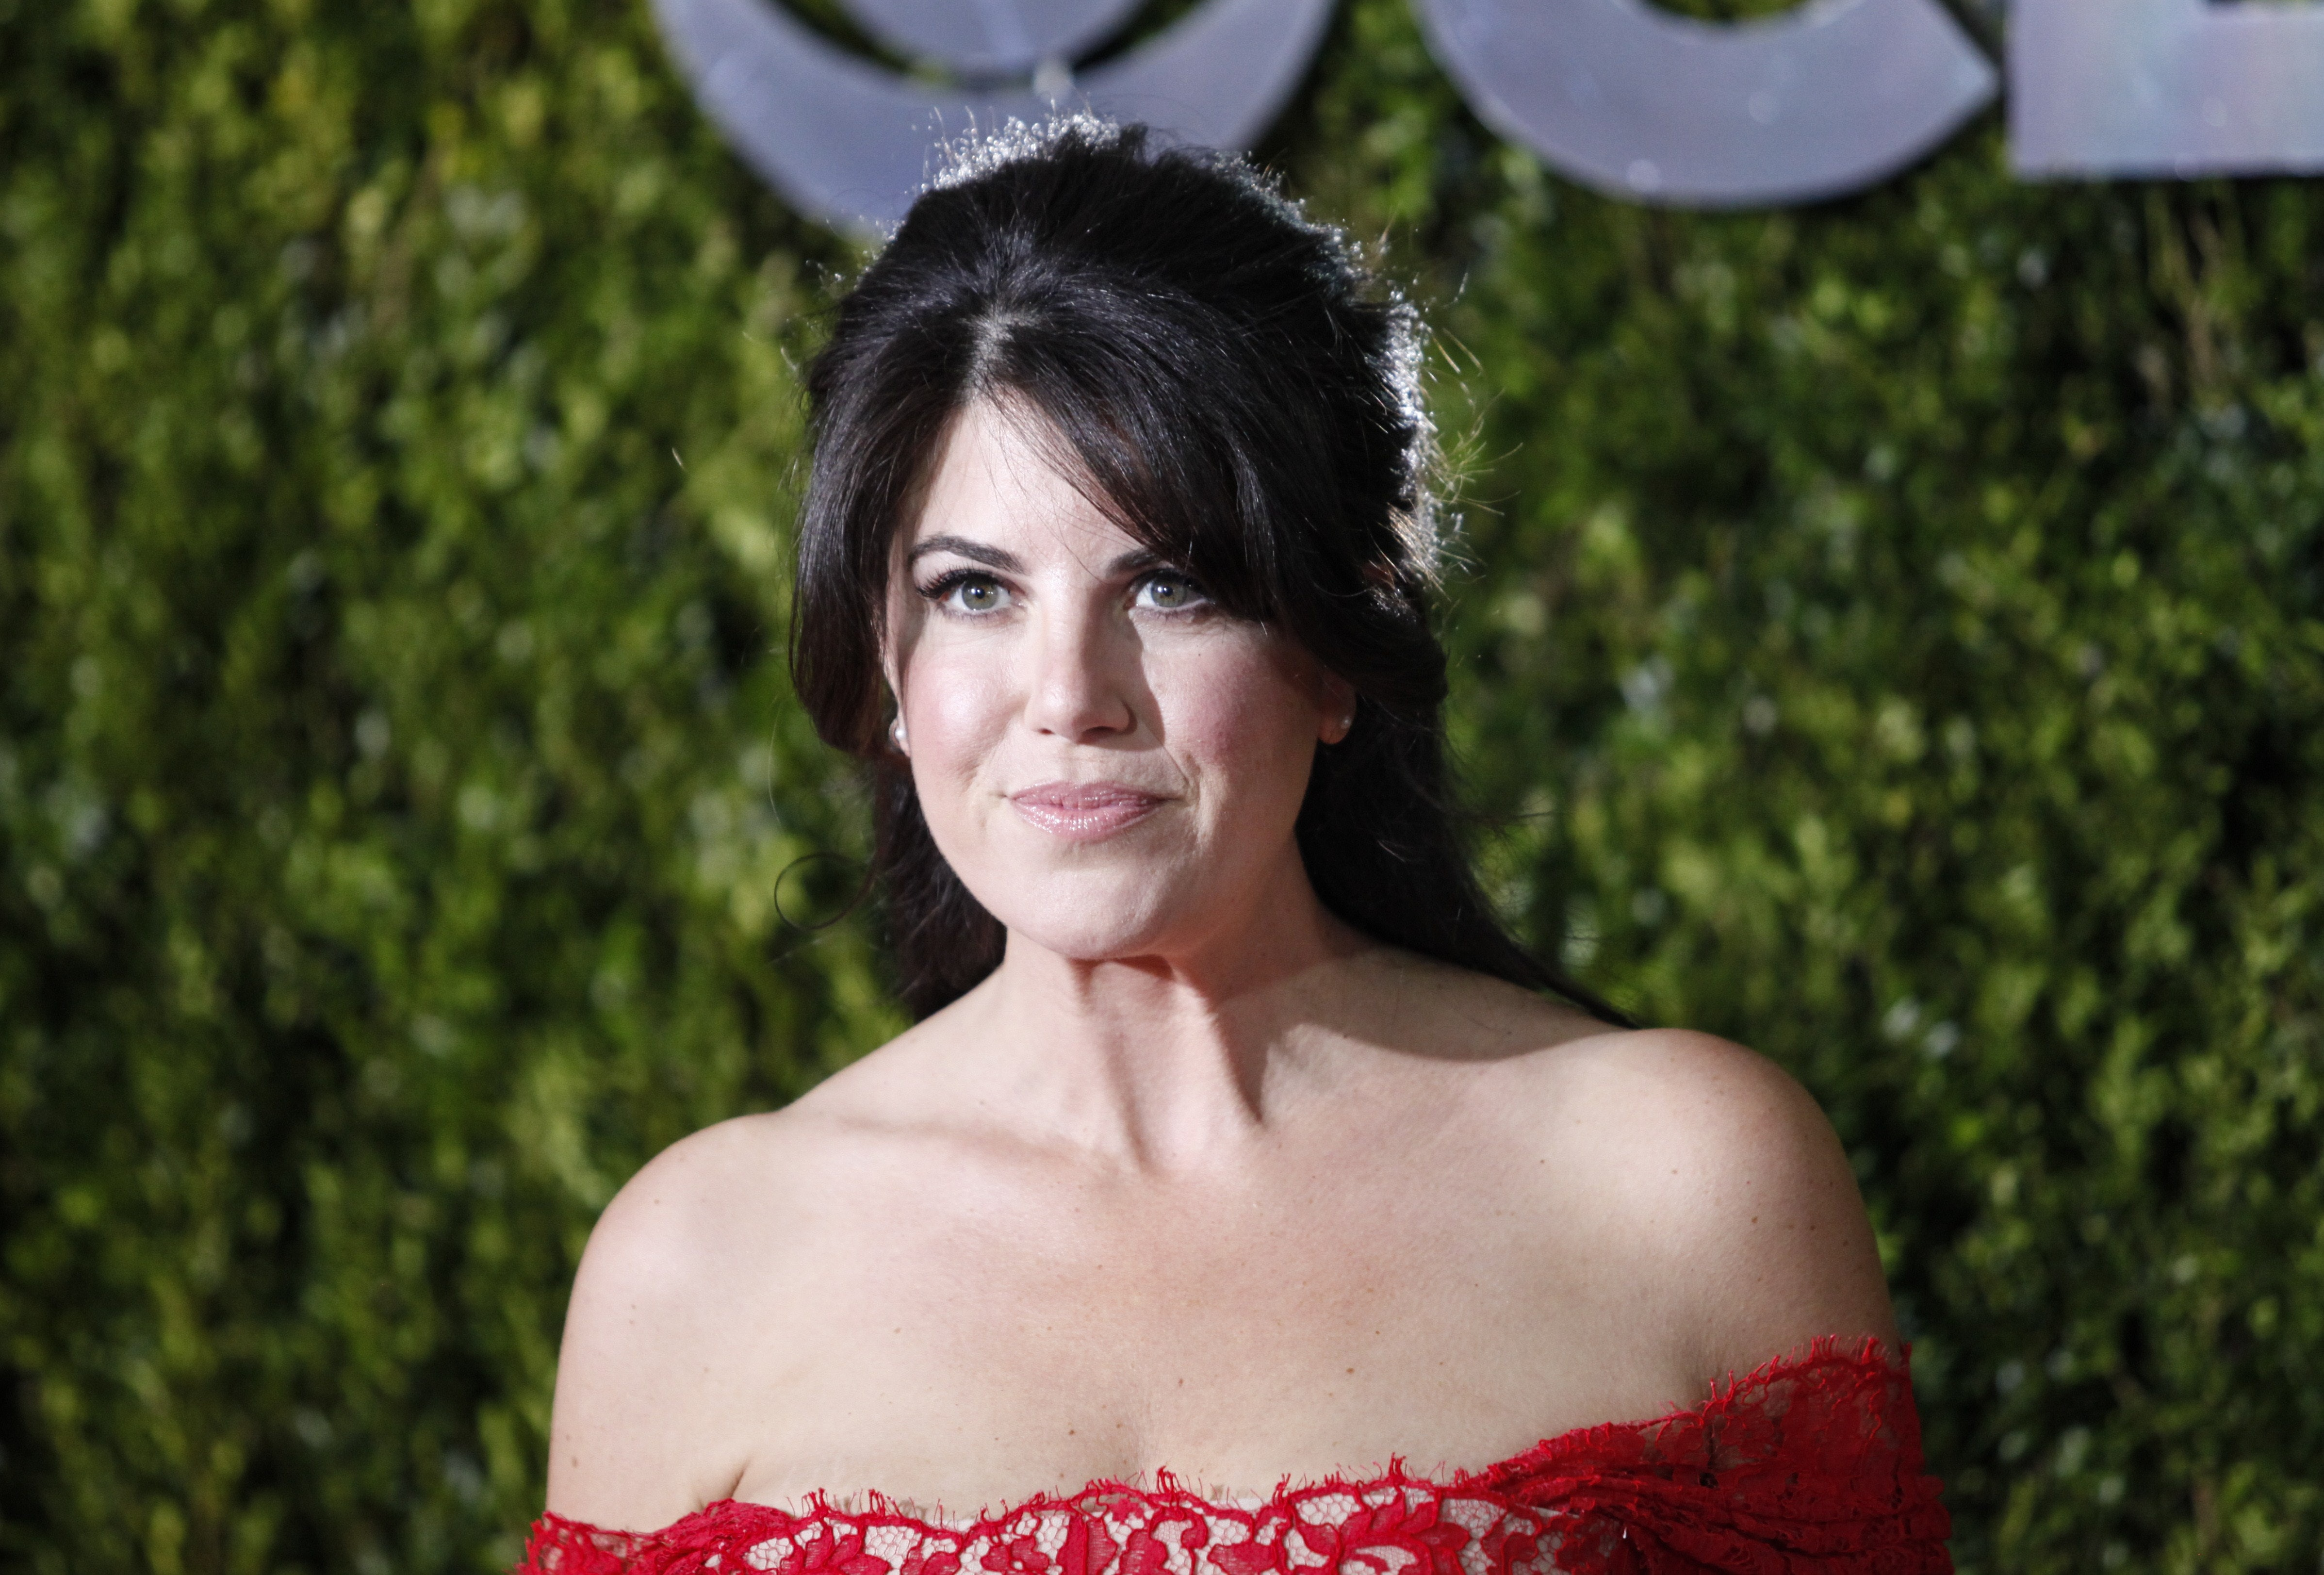 monica lewinsky s interview the guardian was a powerful monica lewinsky s interview the guardian was a powerful message on bullying and public shaming